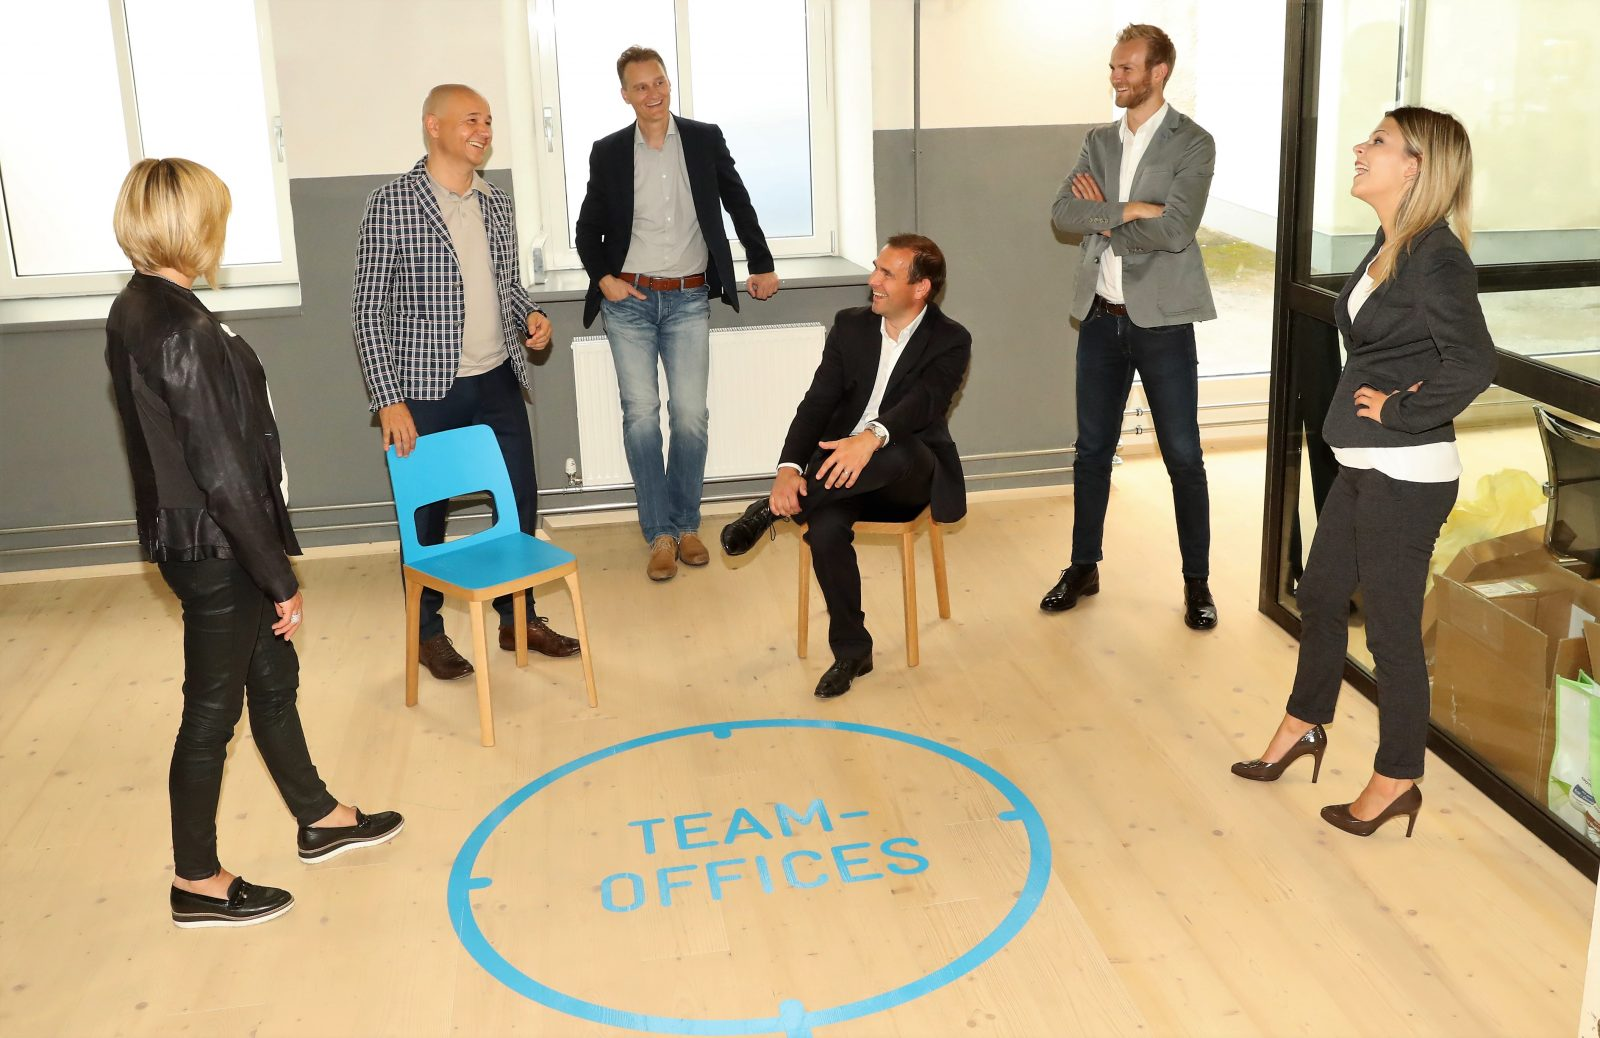 LeadingX-team-innovation-workshop-seminar-mission-vision-ziel-trainer-change-fuehrung-iak-at